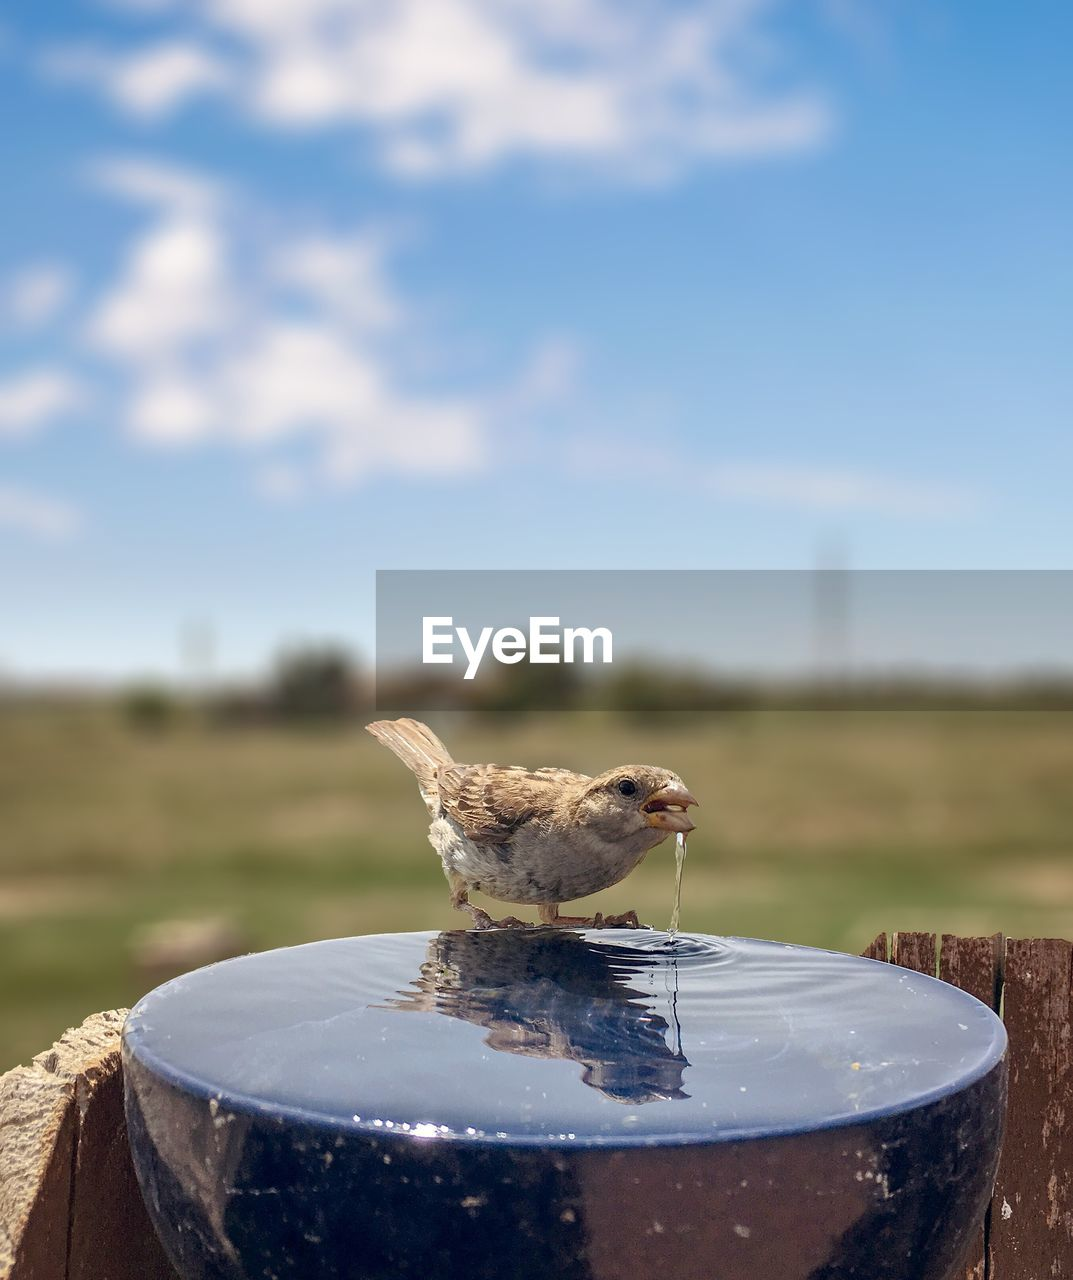 focus on foreground, day, nature, no people, sky, close-up, food and drink, animal, animal themes, food, outdoors, bird, animal wildlife, one animal, vertebrate, animals in the wild, water, land, cloud - sky, table